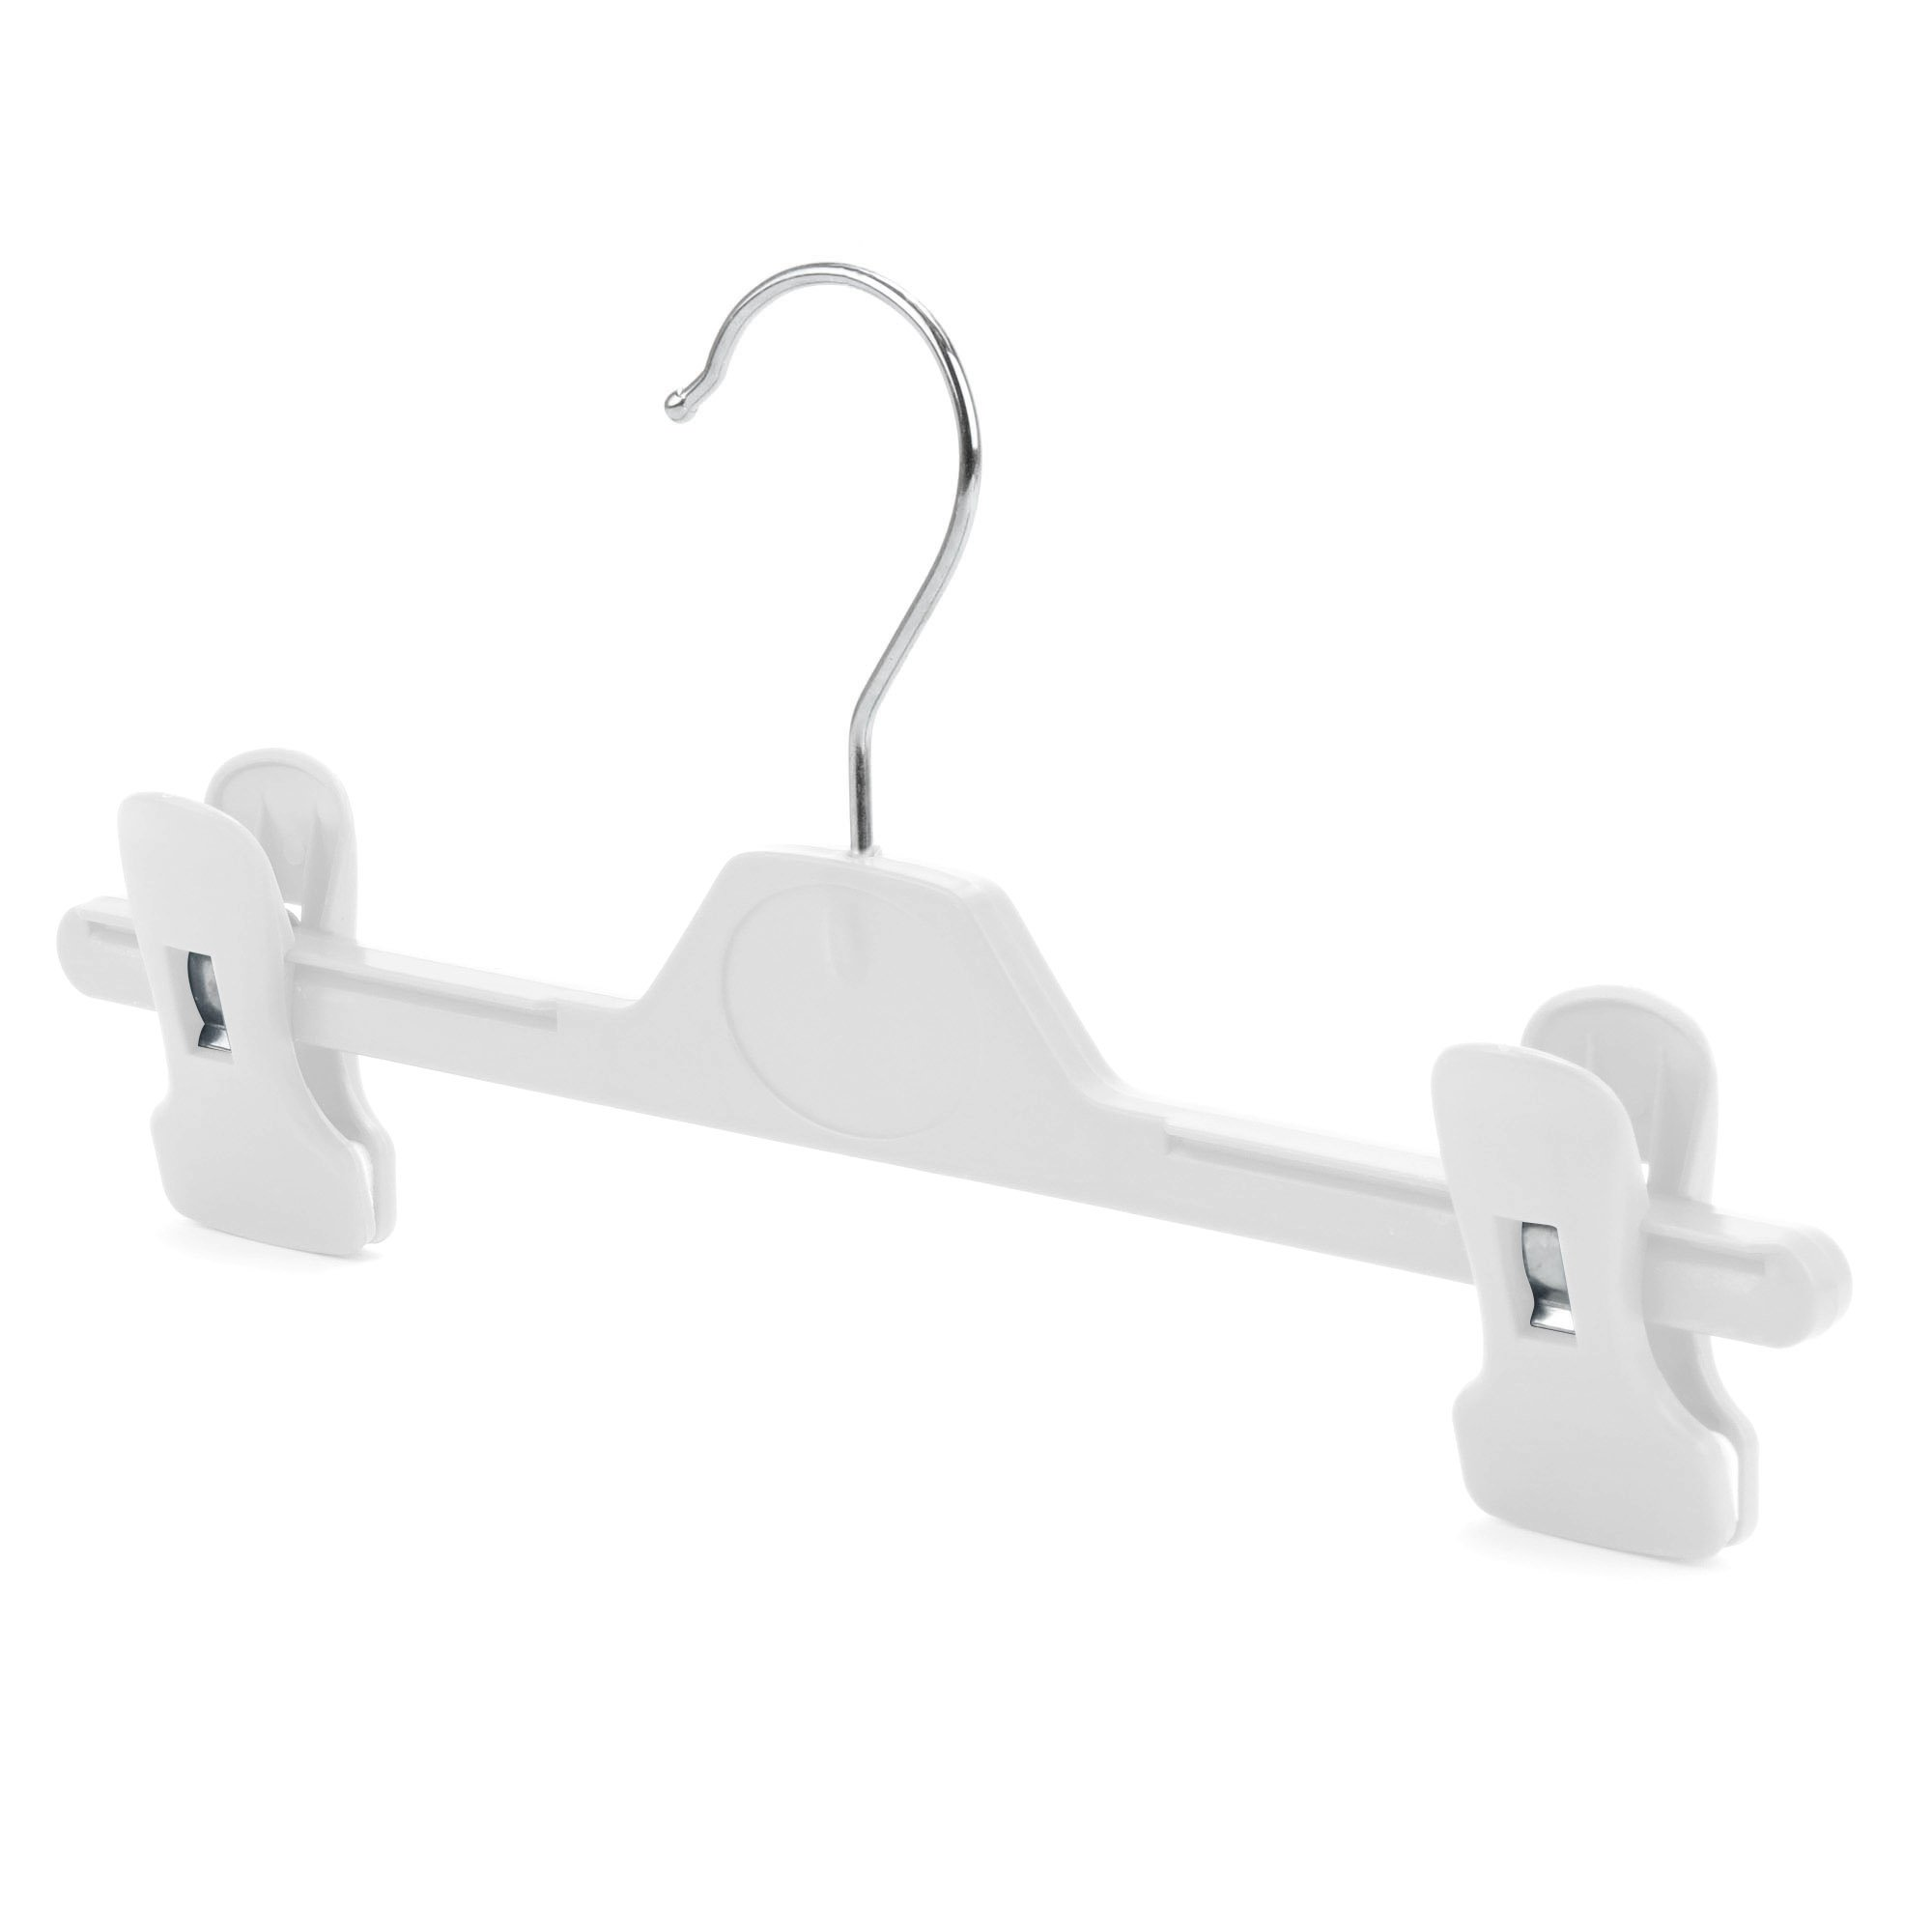 """HANGERWORLD Small Plastic 11"""" Grip Coat Hangers with Clip for Baby and Toddler Clothes, White, Pack of 10"""